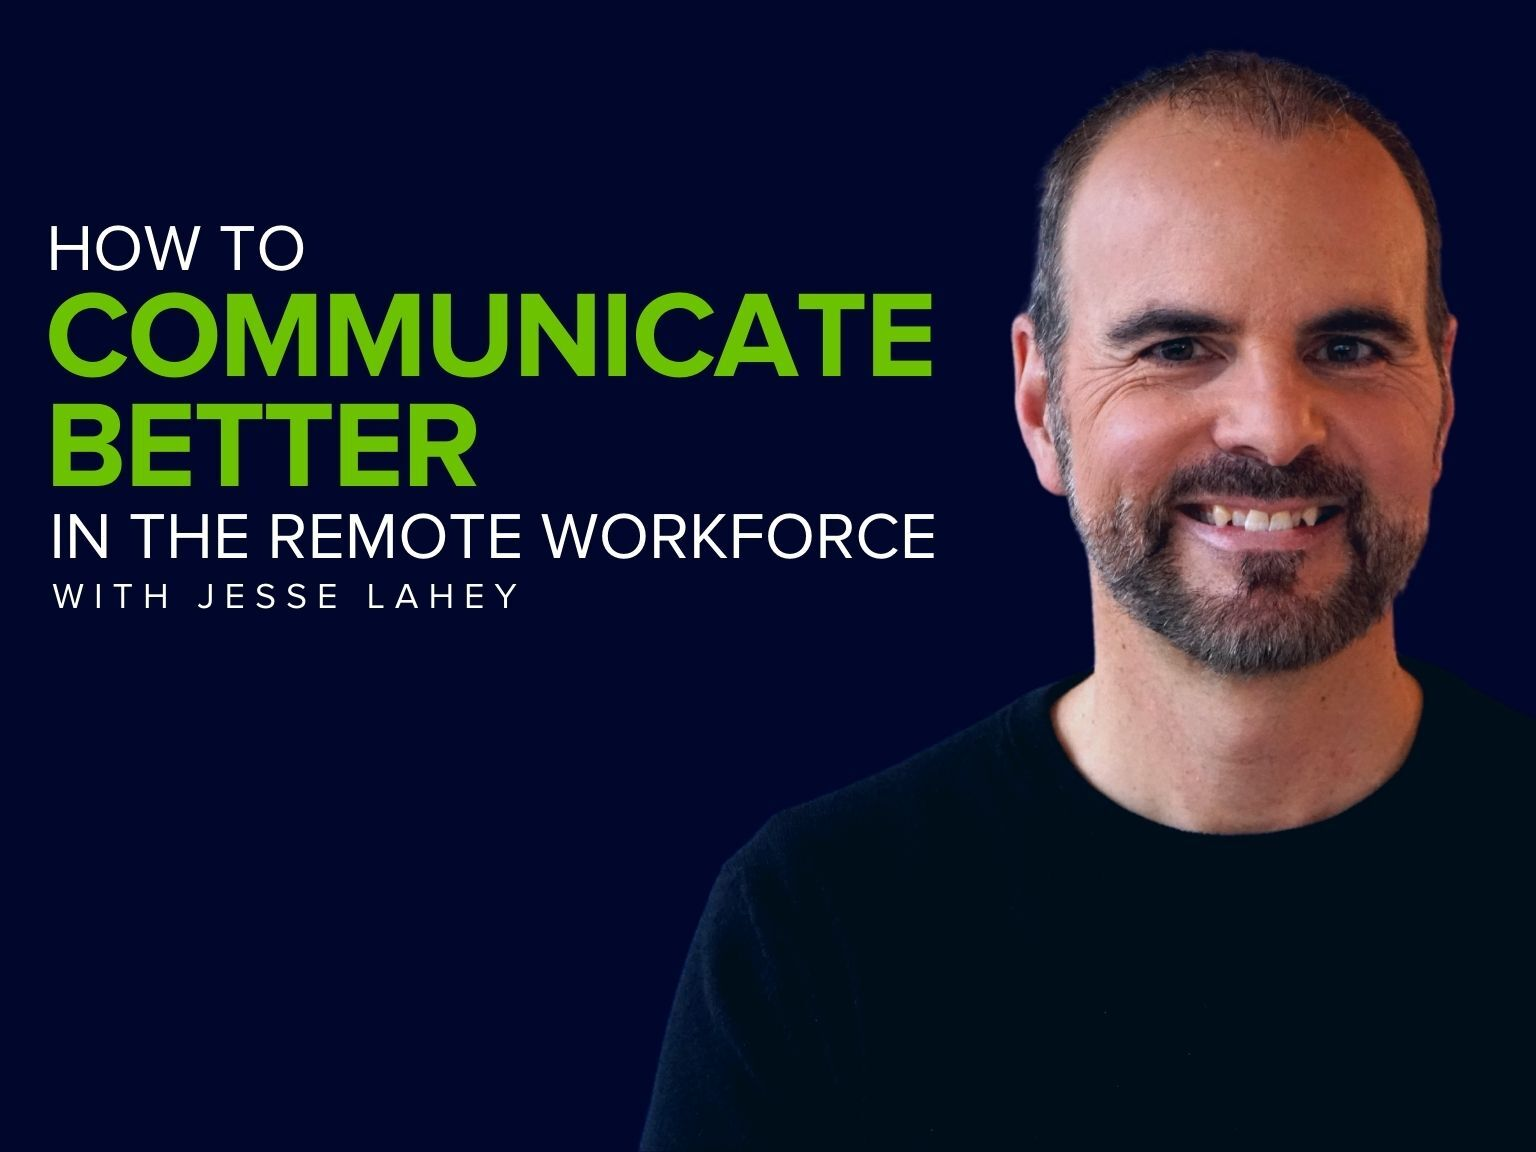 How to Communicate Better in the Remote Workforce with Jesse Lahey